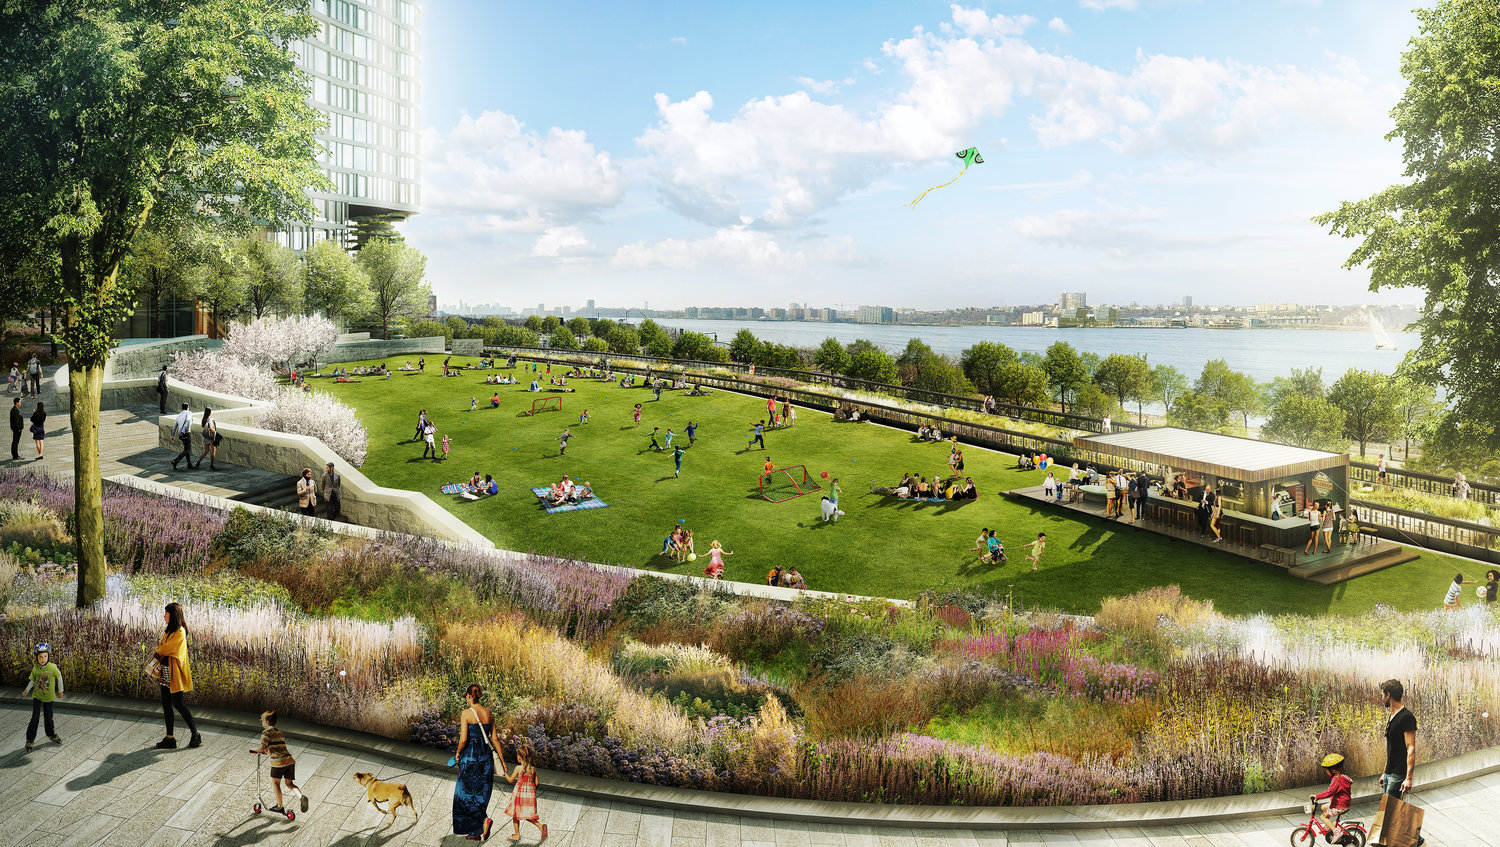 Rendering by Design Distill of Hudson Yards park